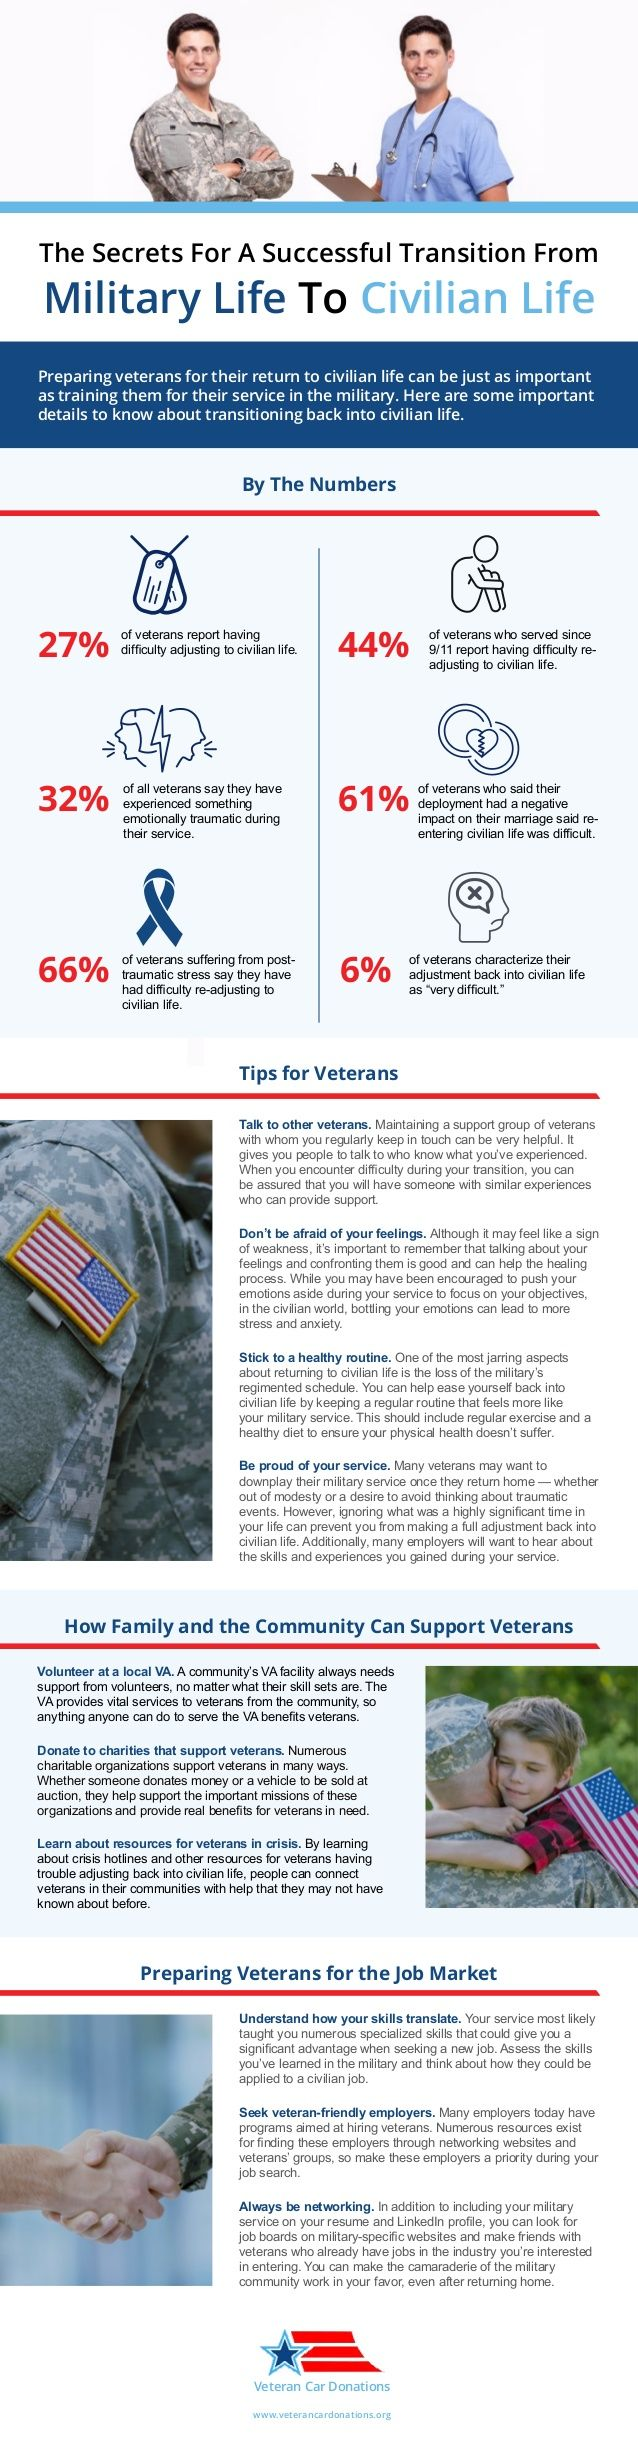 The Secrets For A Successful Transition From Military Life